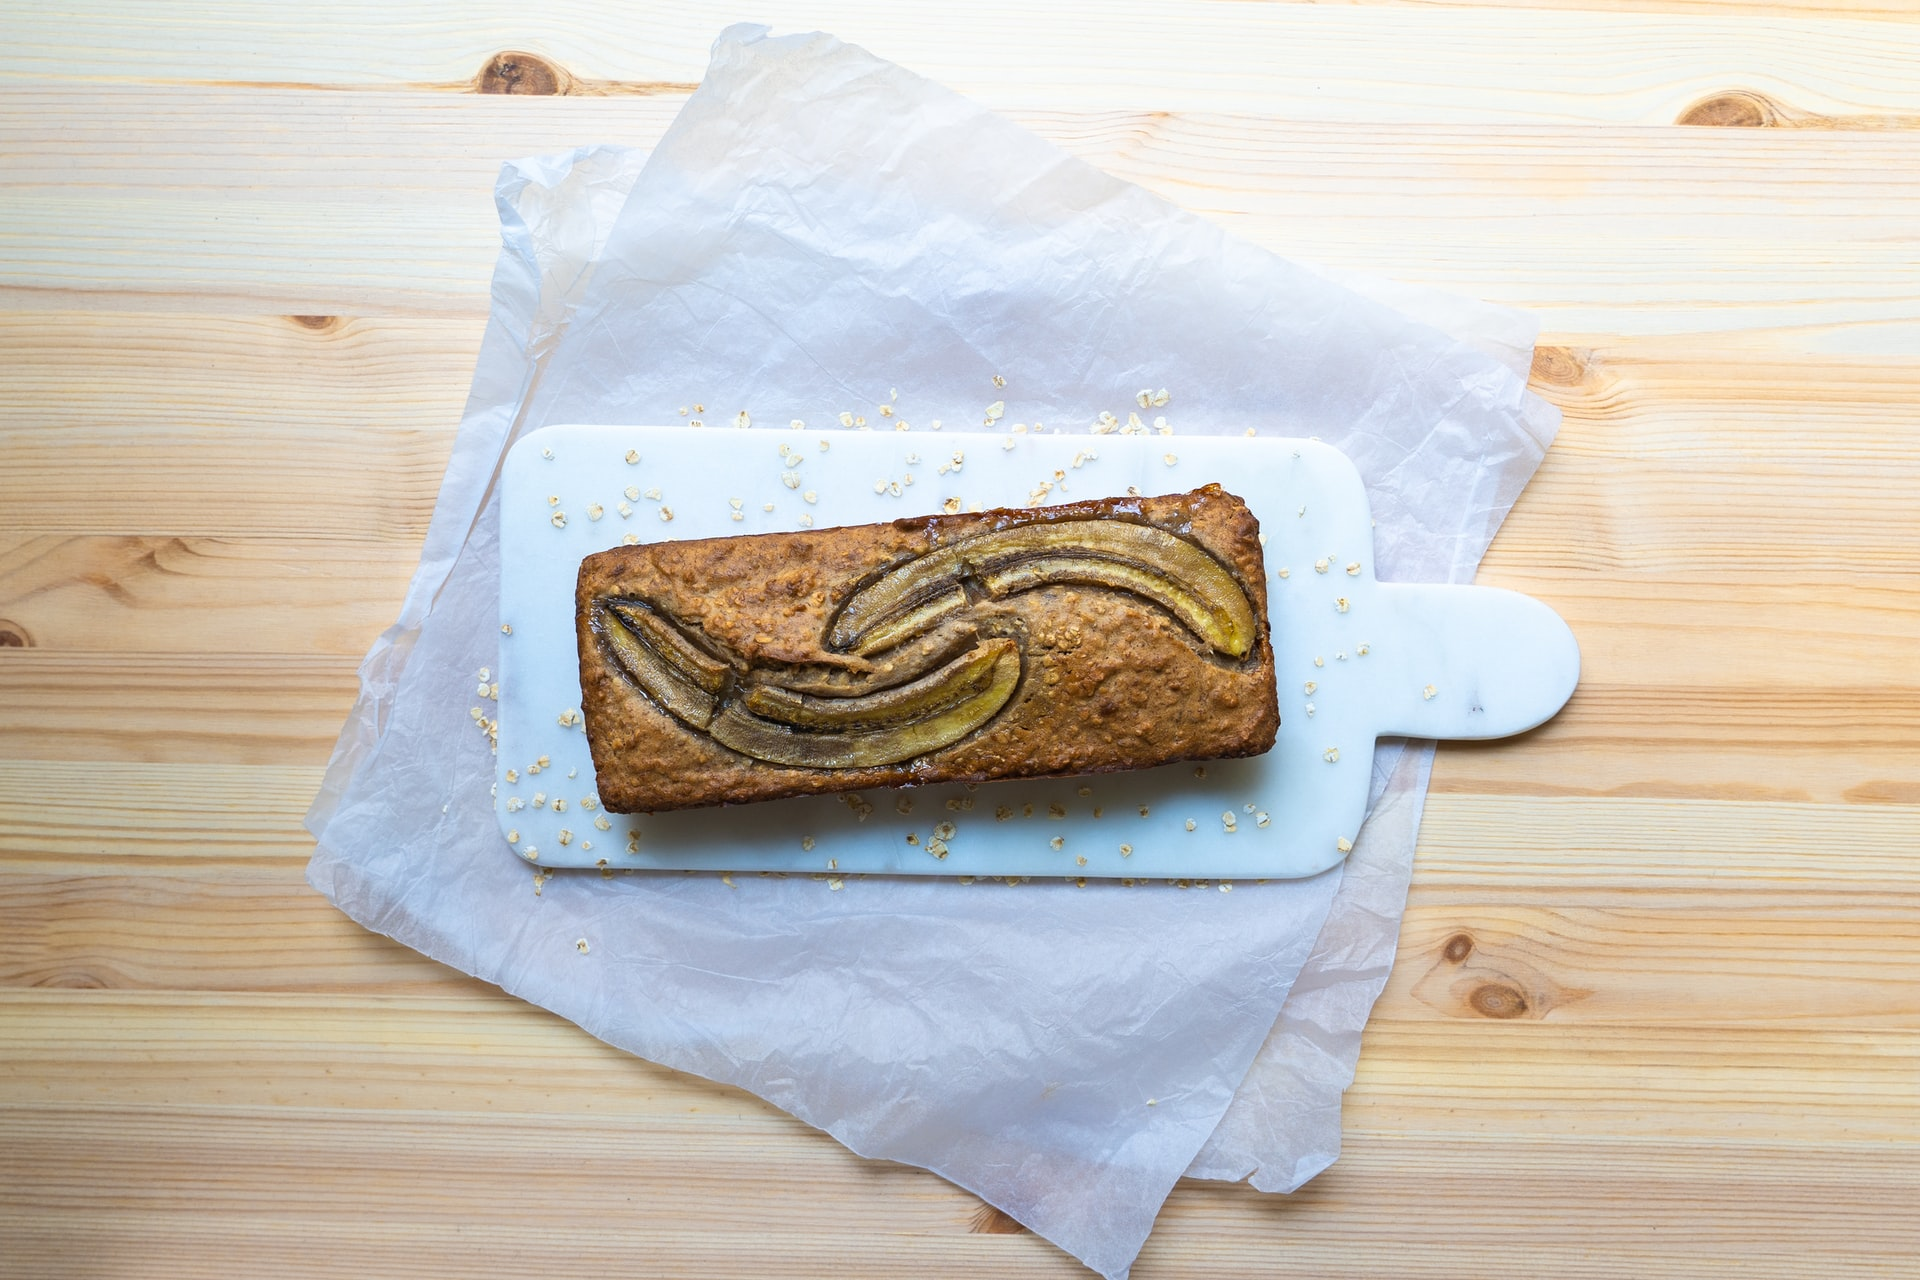 banana bread fresh out the oven